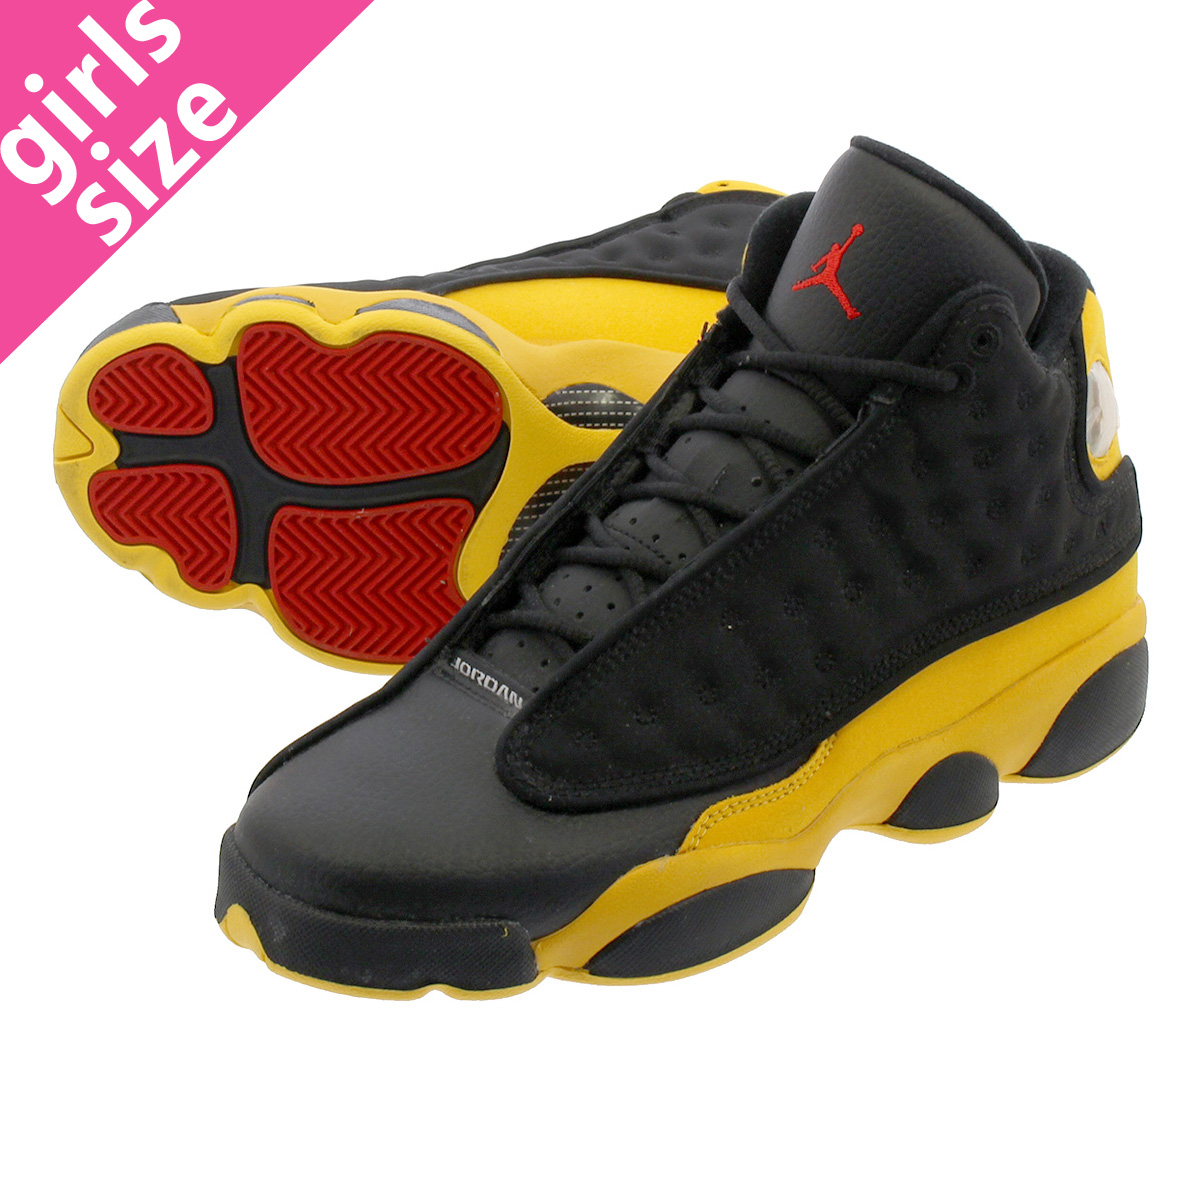 dae82ec4aff1 NIKE AIR JORDAN 13 RETRO BG Nike Air Jordan 13 nostalgic BG BLACK UNIVERSITY  RED UNIVERSITY GOLD 884